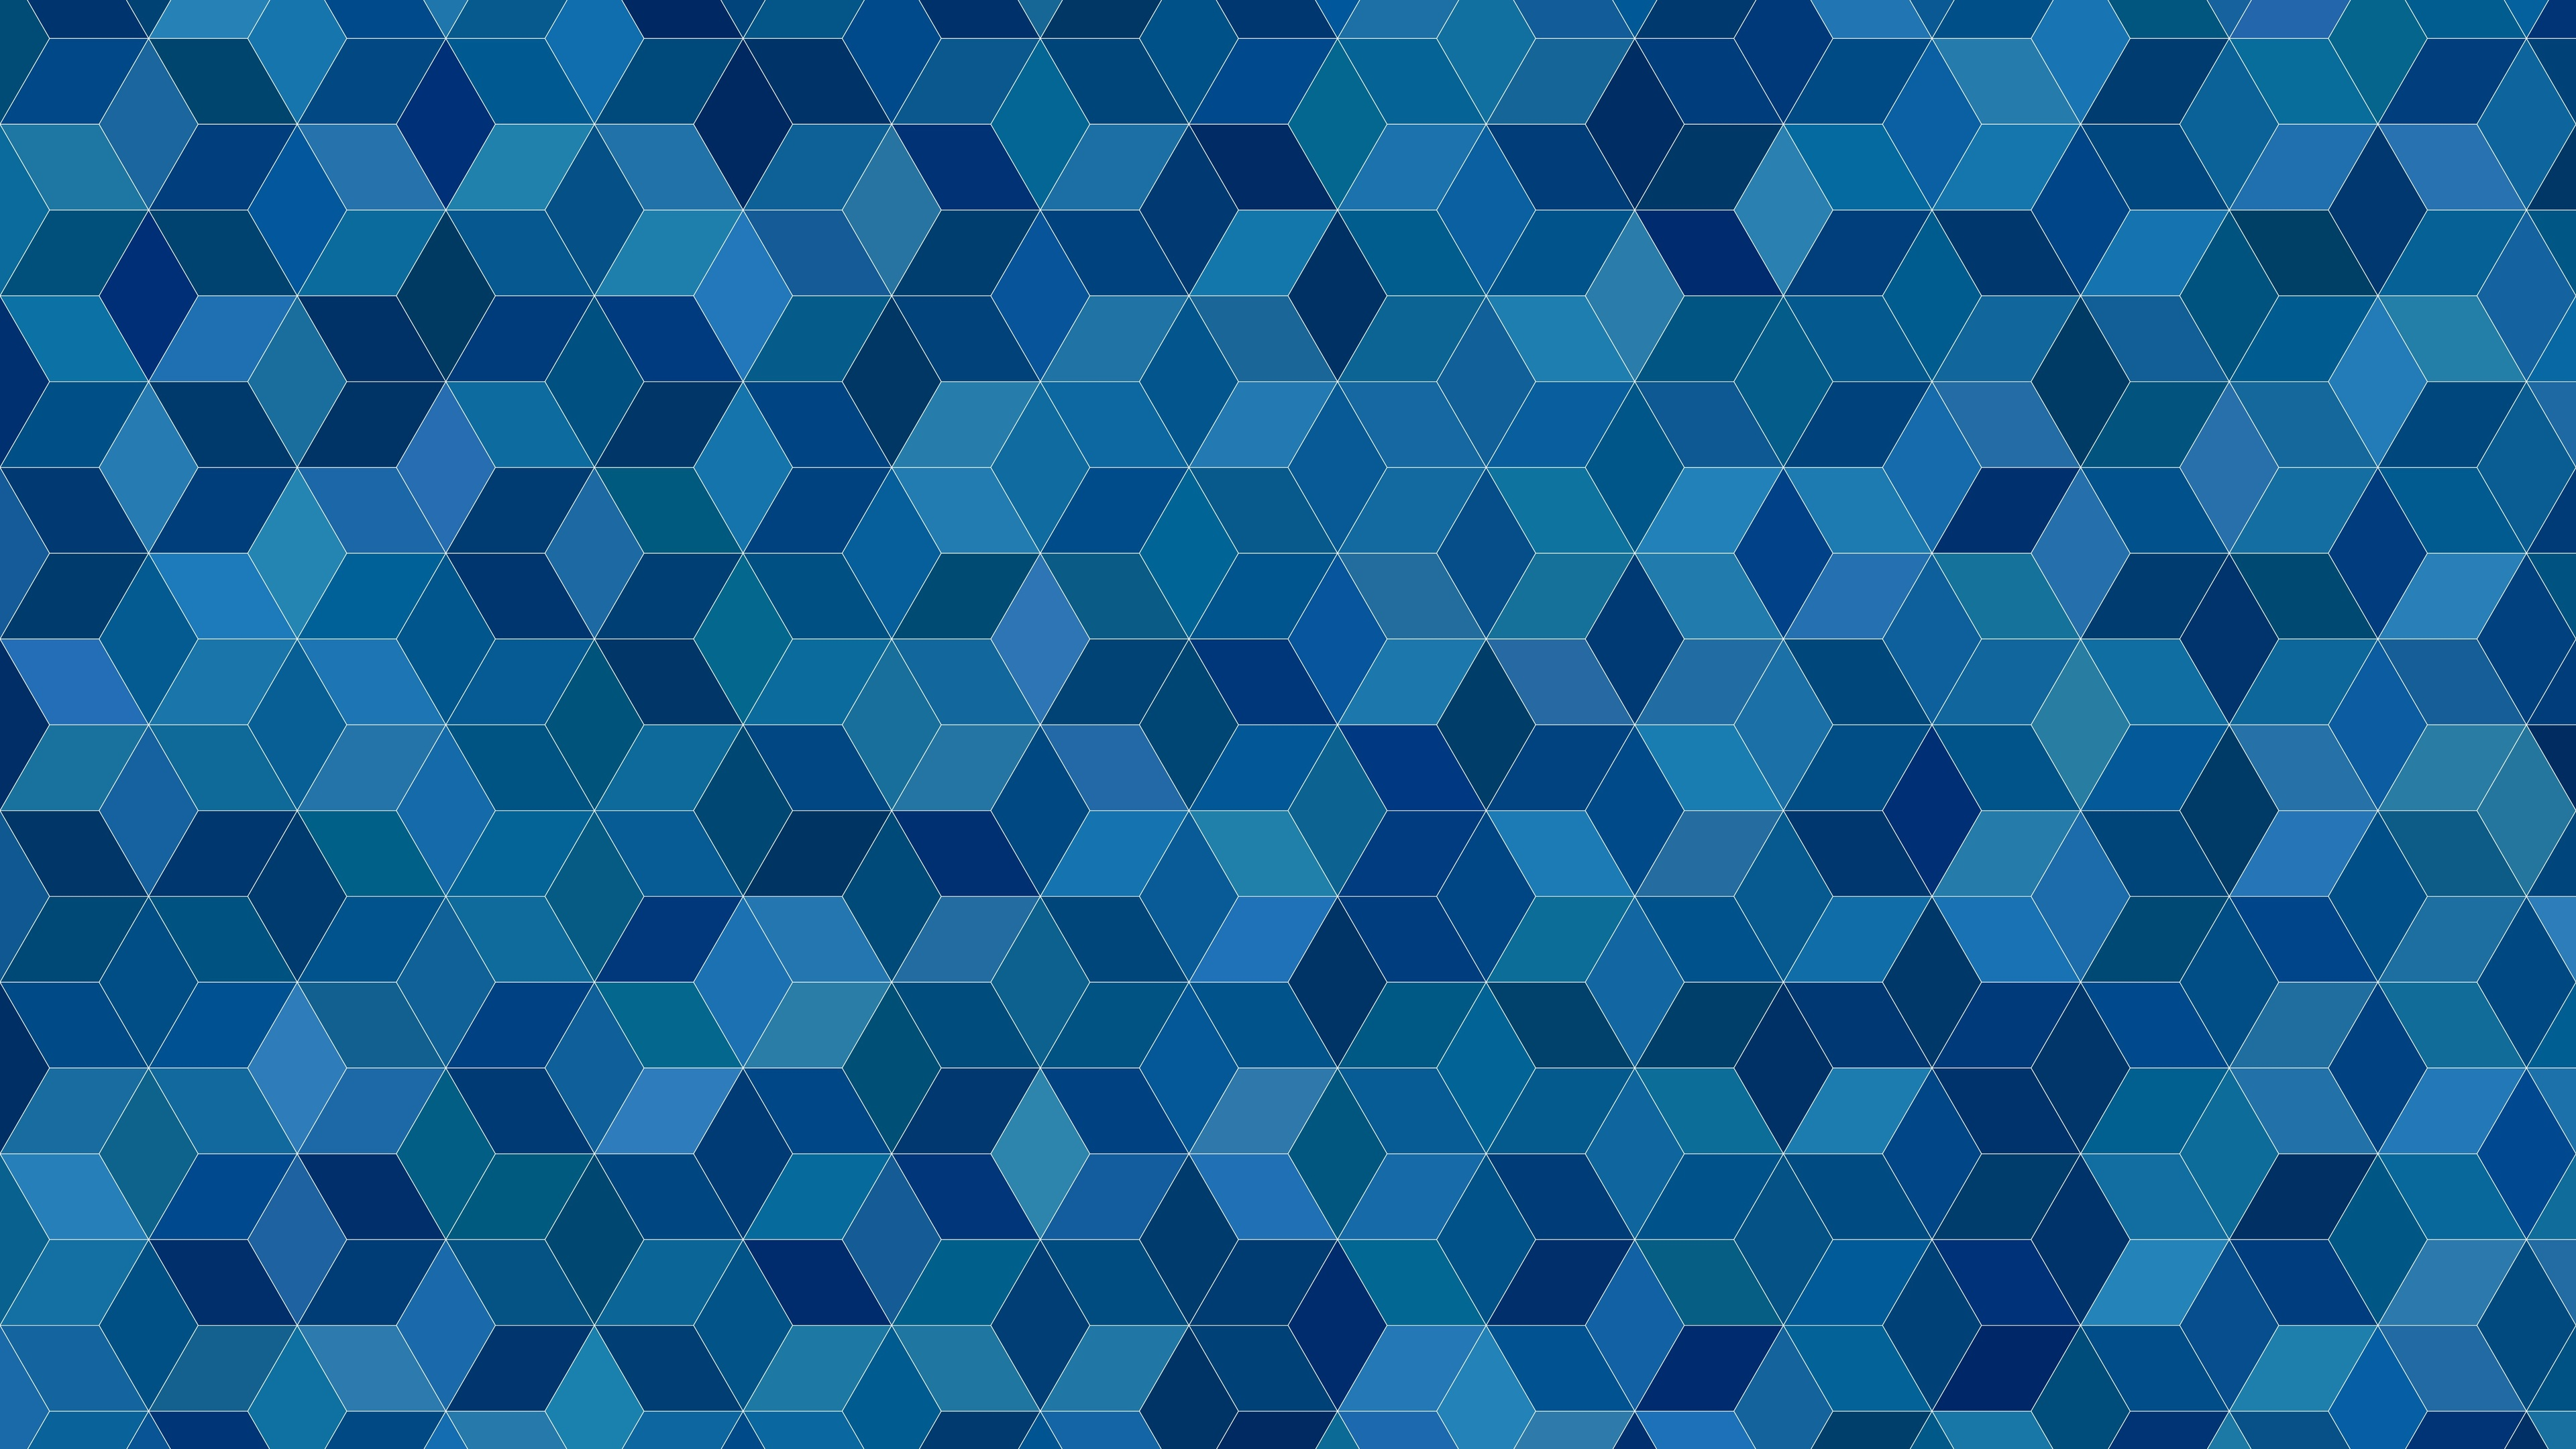 polygons abstract patterns 5k 1539371410 - Polygons Abstract Patterns 5k - polygon wallpapers, pattern wallpapers, hd-wallpapers, abstract wallpapers, 5k wallpapers, 4k-wallpapers